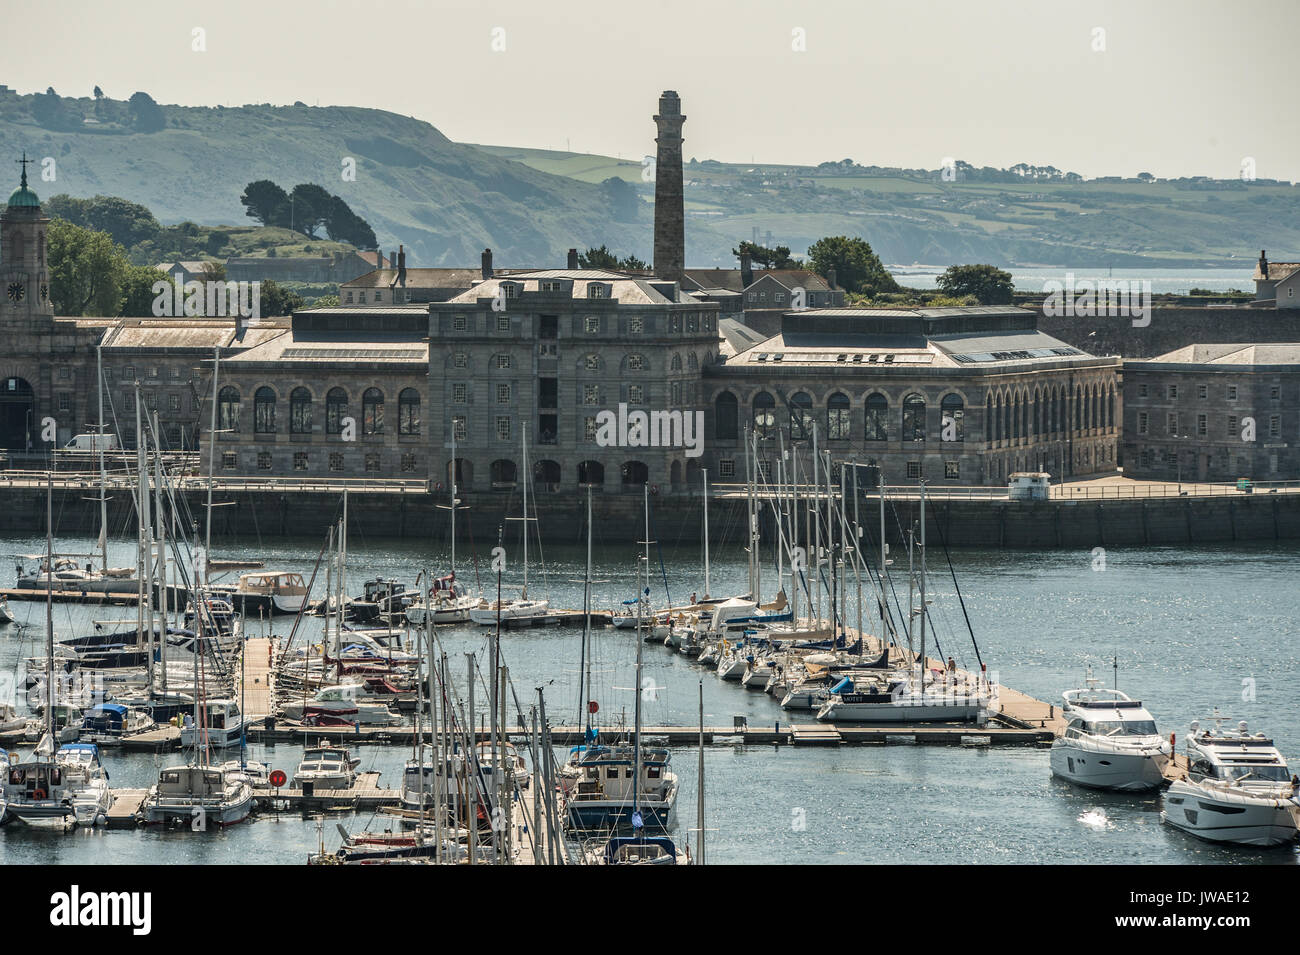 Picture by Paul Slater/PSI - Royal William Yard, Plymouth, Devon, UK - Stock Image